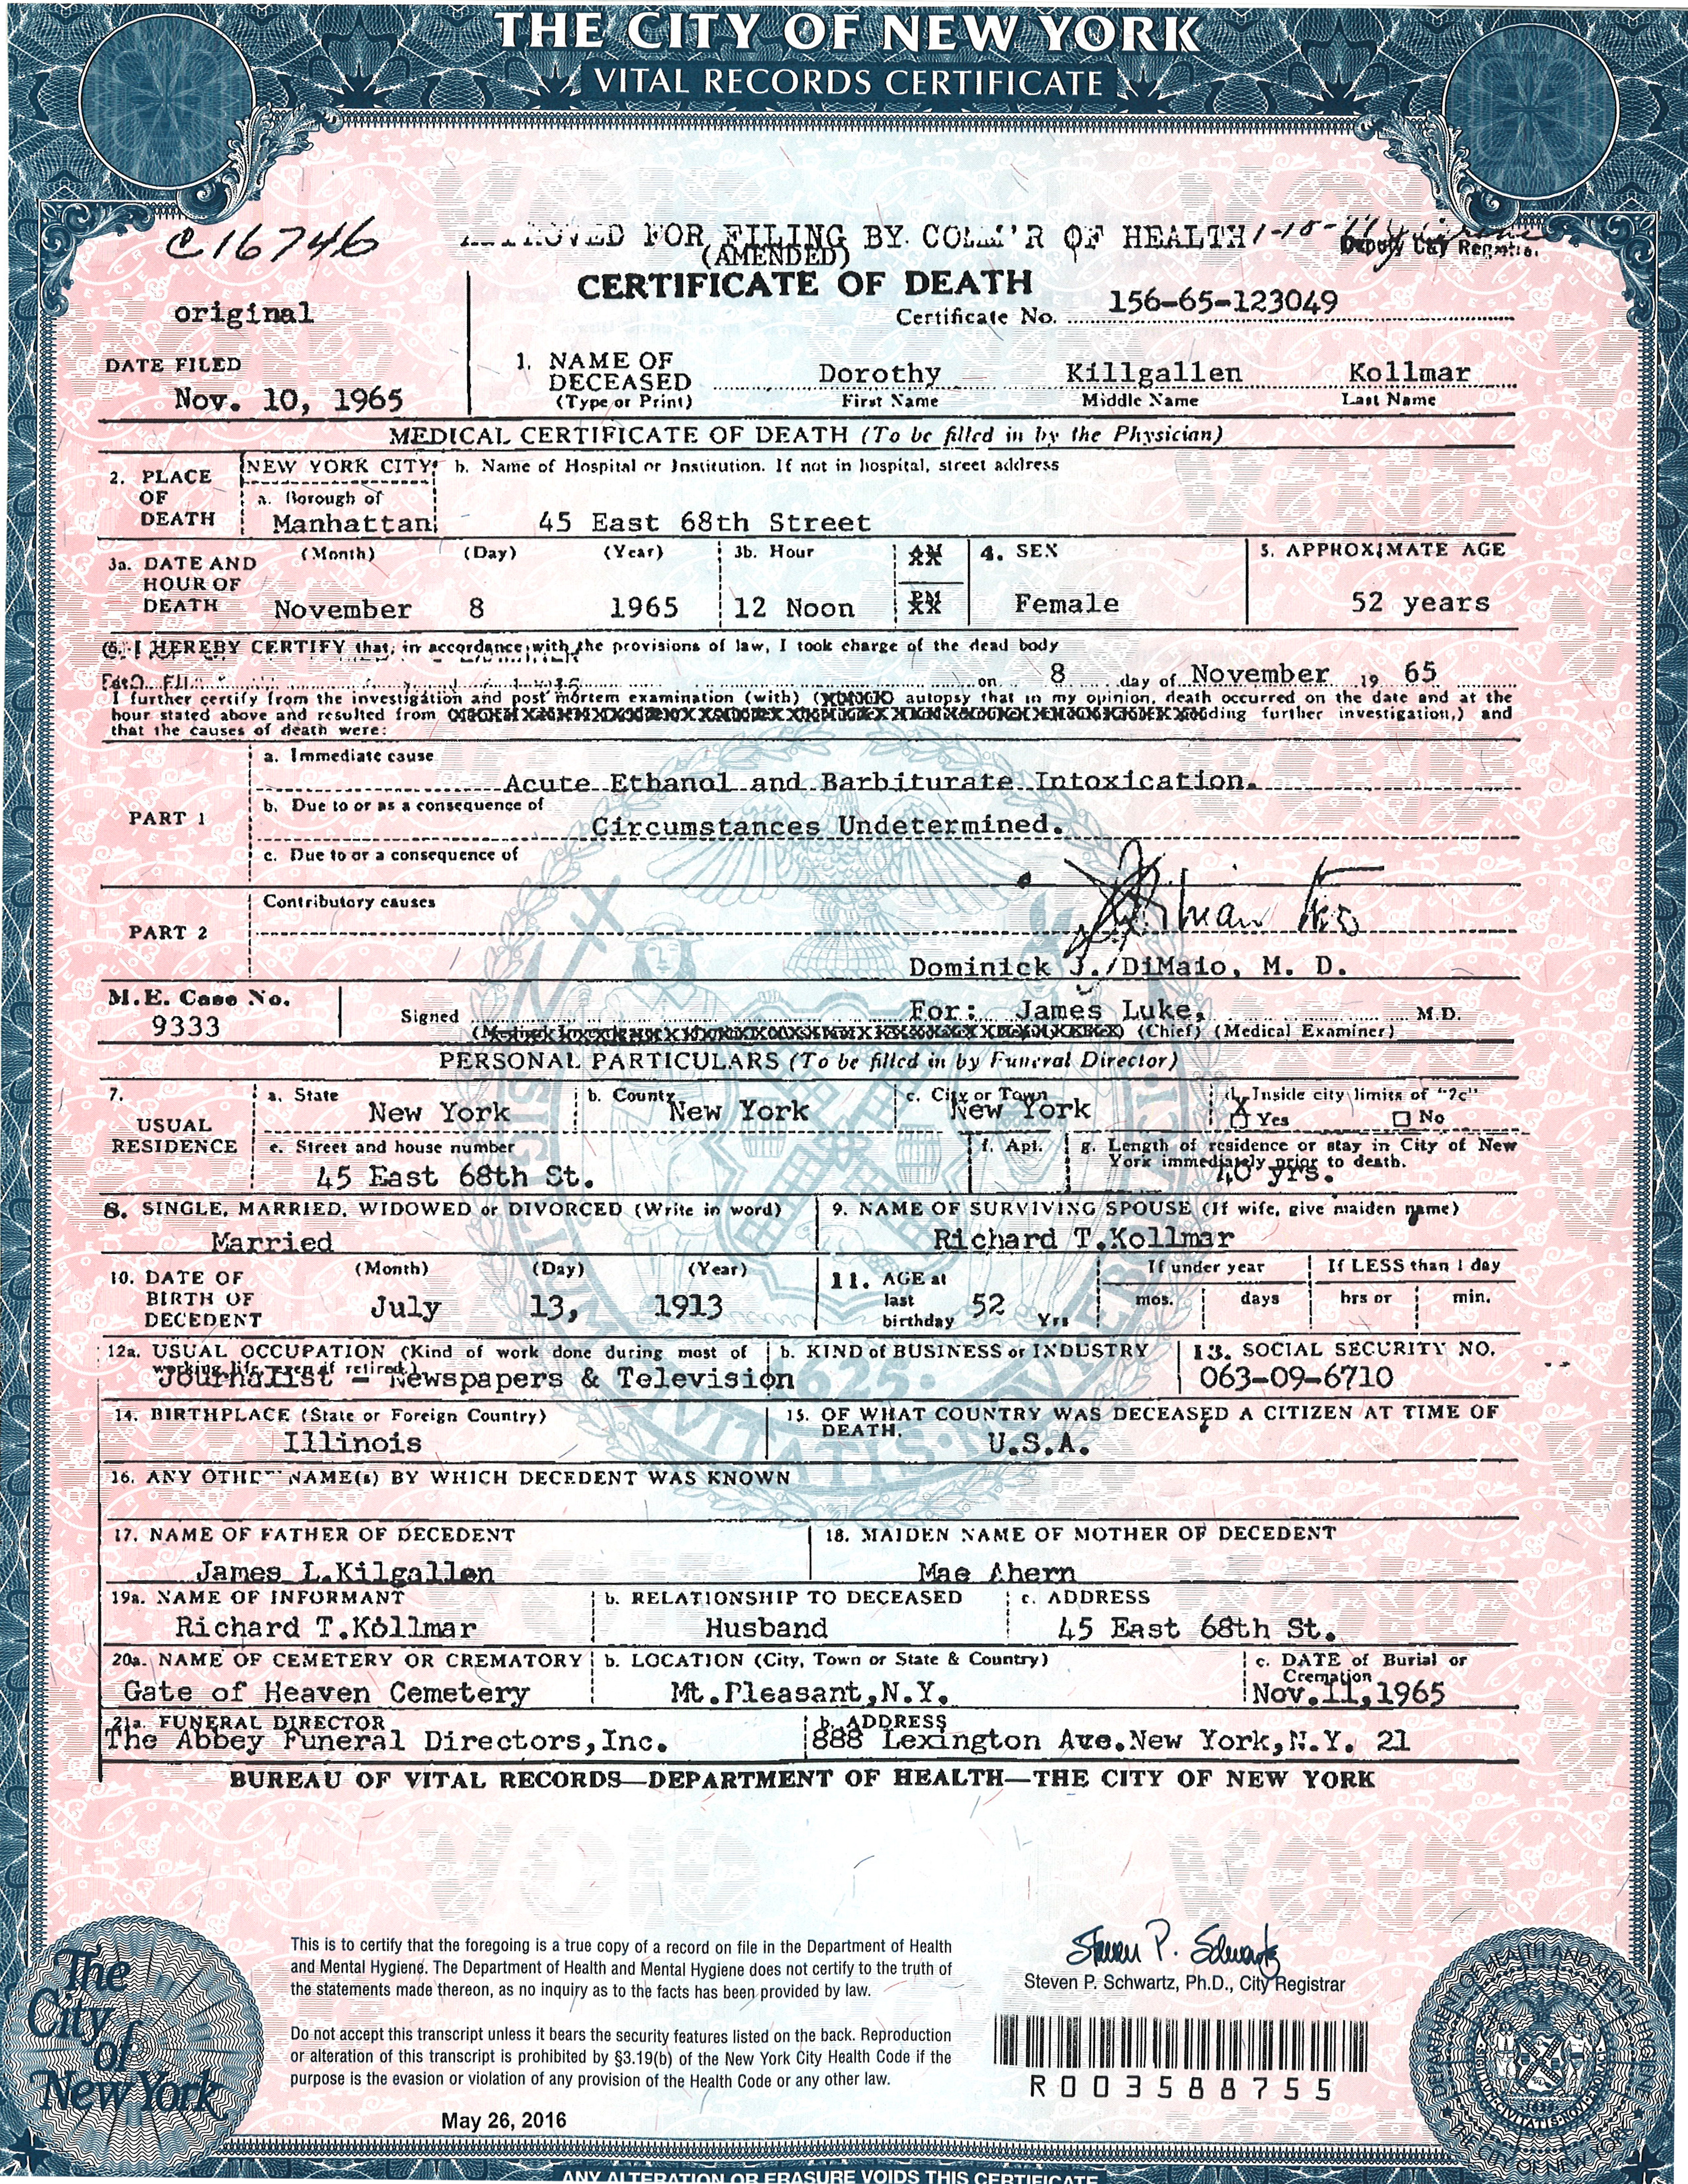 to get a copy of a death certificate